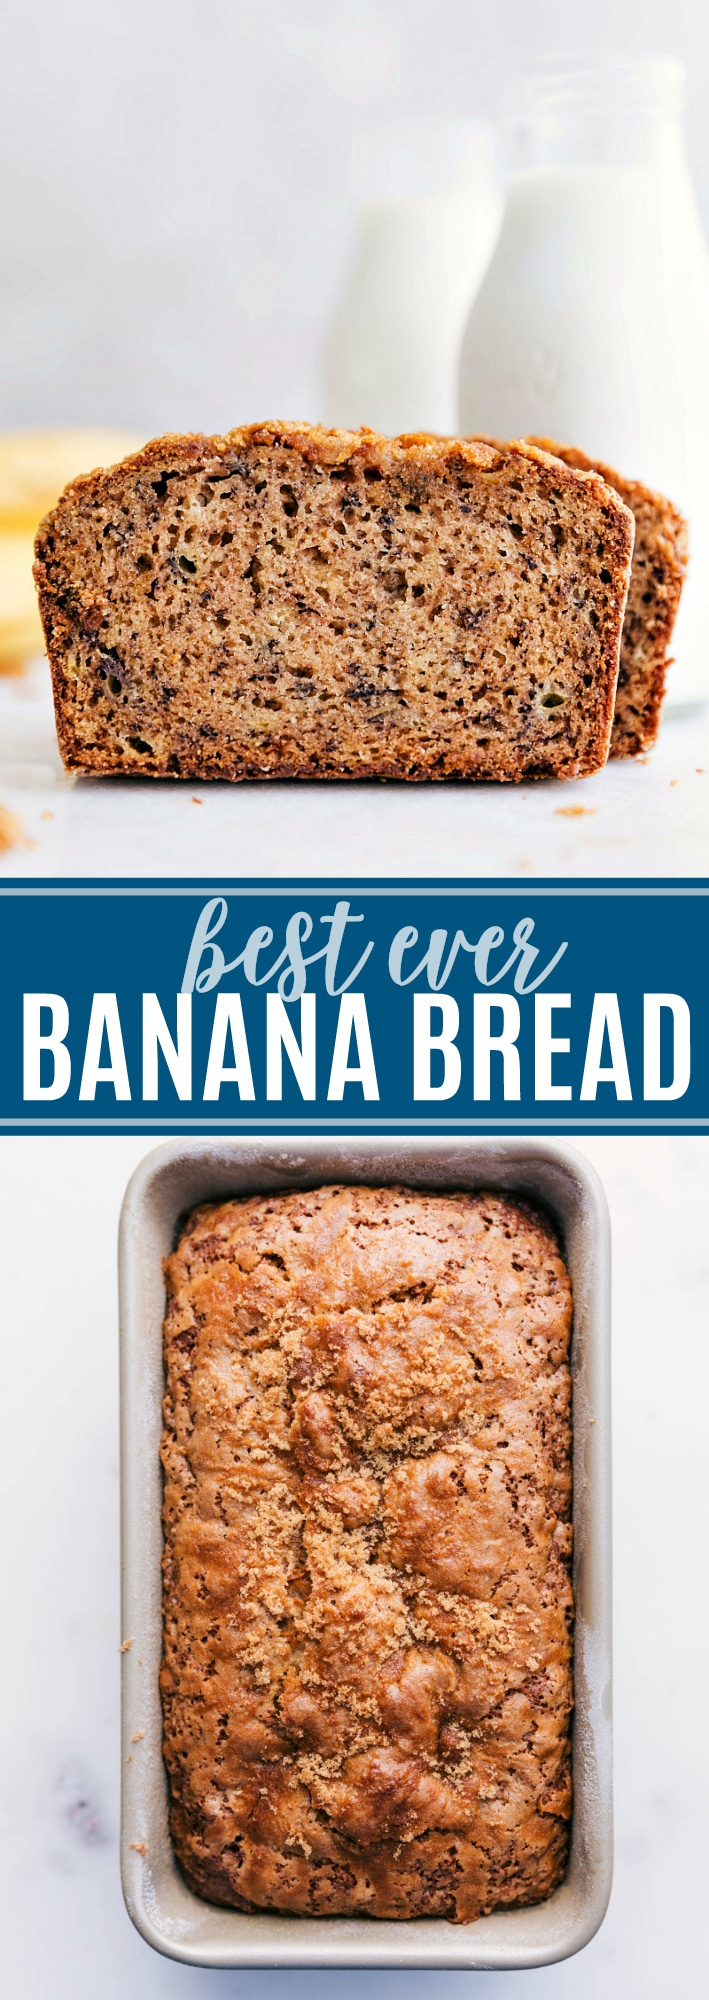 This moist, flavorful, & delicious easy banana bread recipe is a family favorite! All my top tips and tricks to perfect banana bread everytime! via chelseasmessyapron.com #banana #bread #easy #quick #best #recipe #dessert #snack #kid #friendly #cinnamon